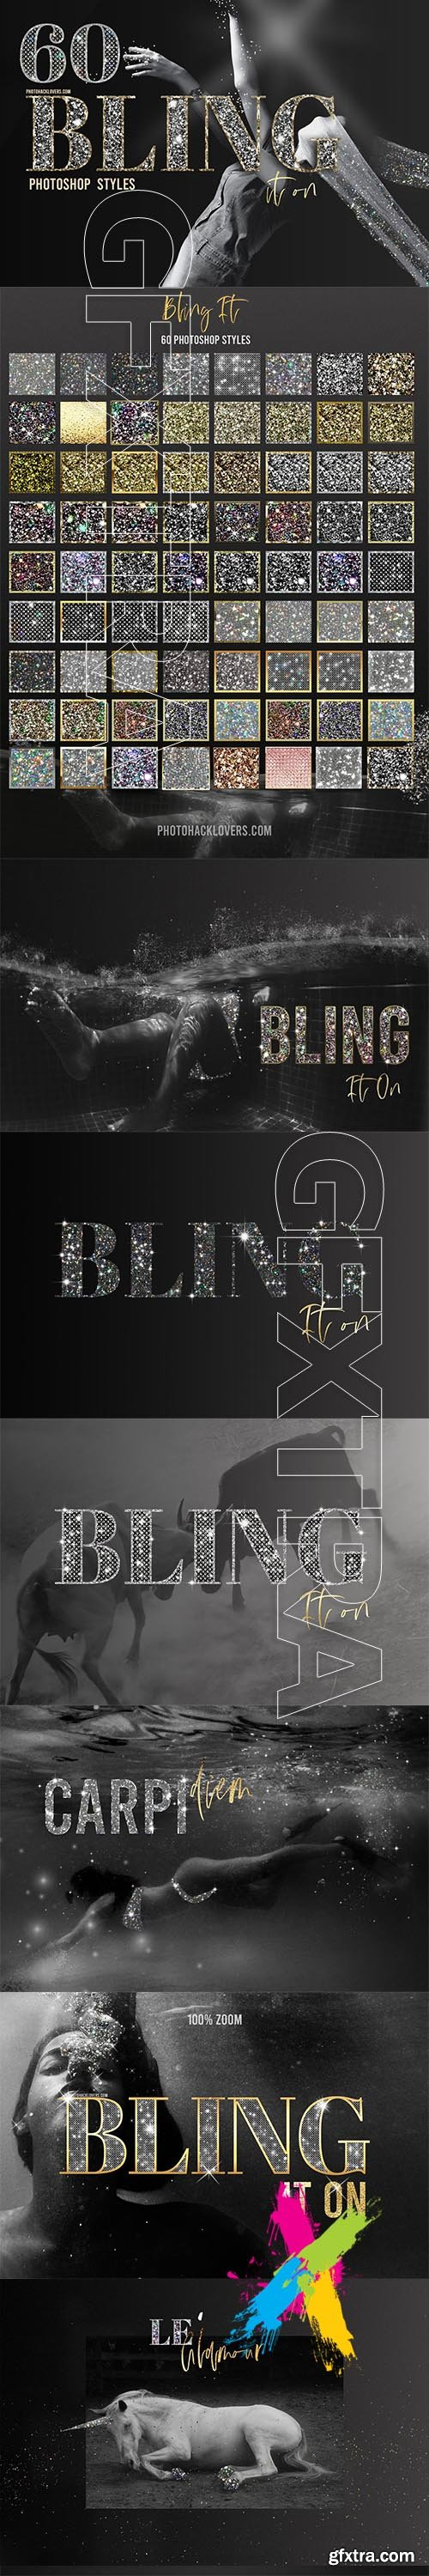 CreativeMarket - Bling it on Photoshop Styles 5747294